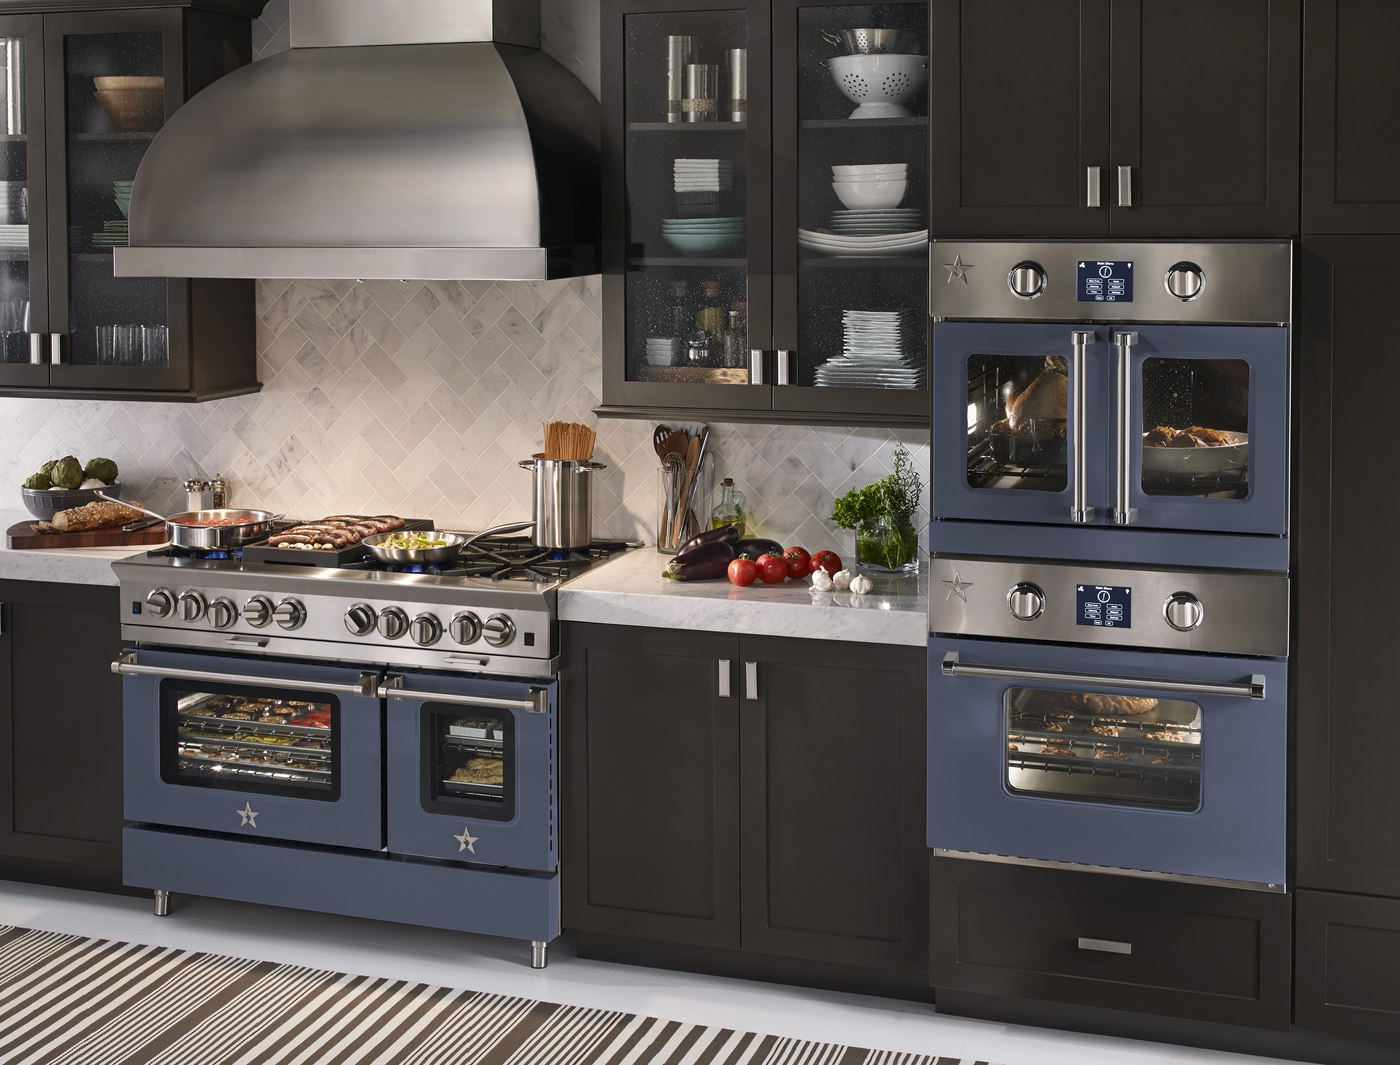 GE Monogram French Door Wall Ovens (Reviews/Ratings/Prices)